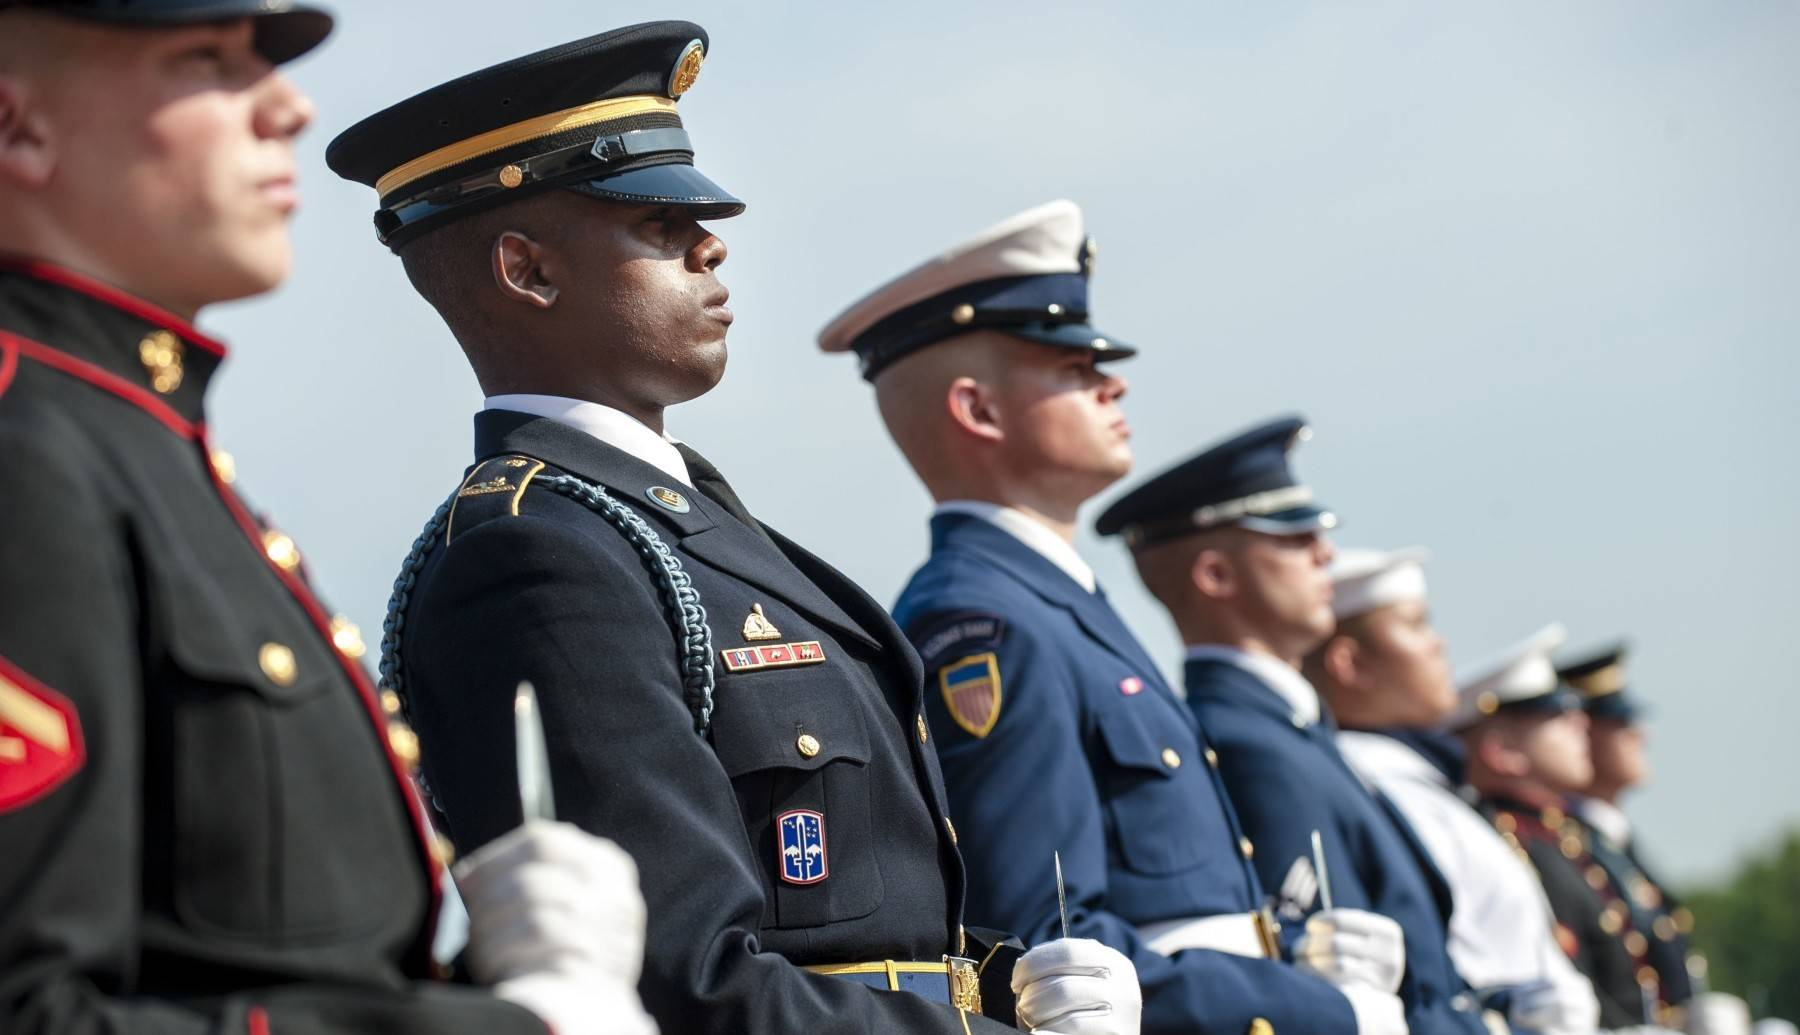 Members of all 5 branches of the military honor guard